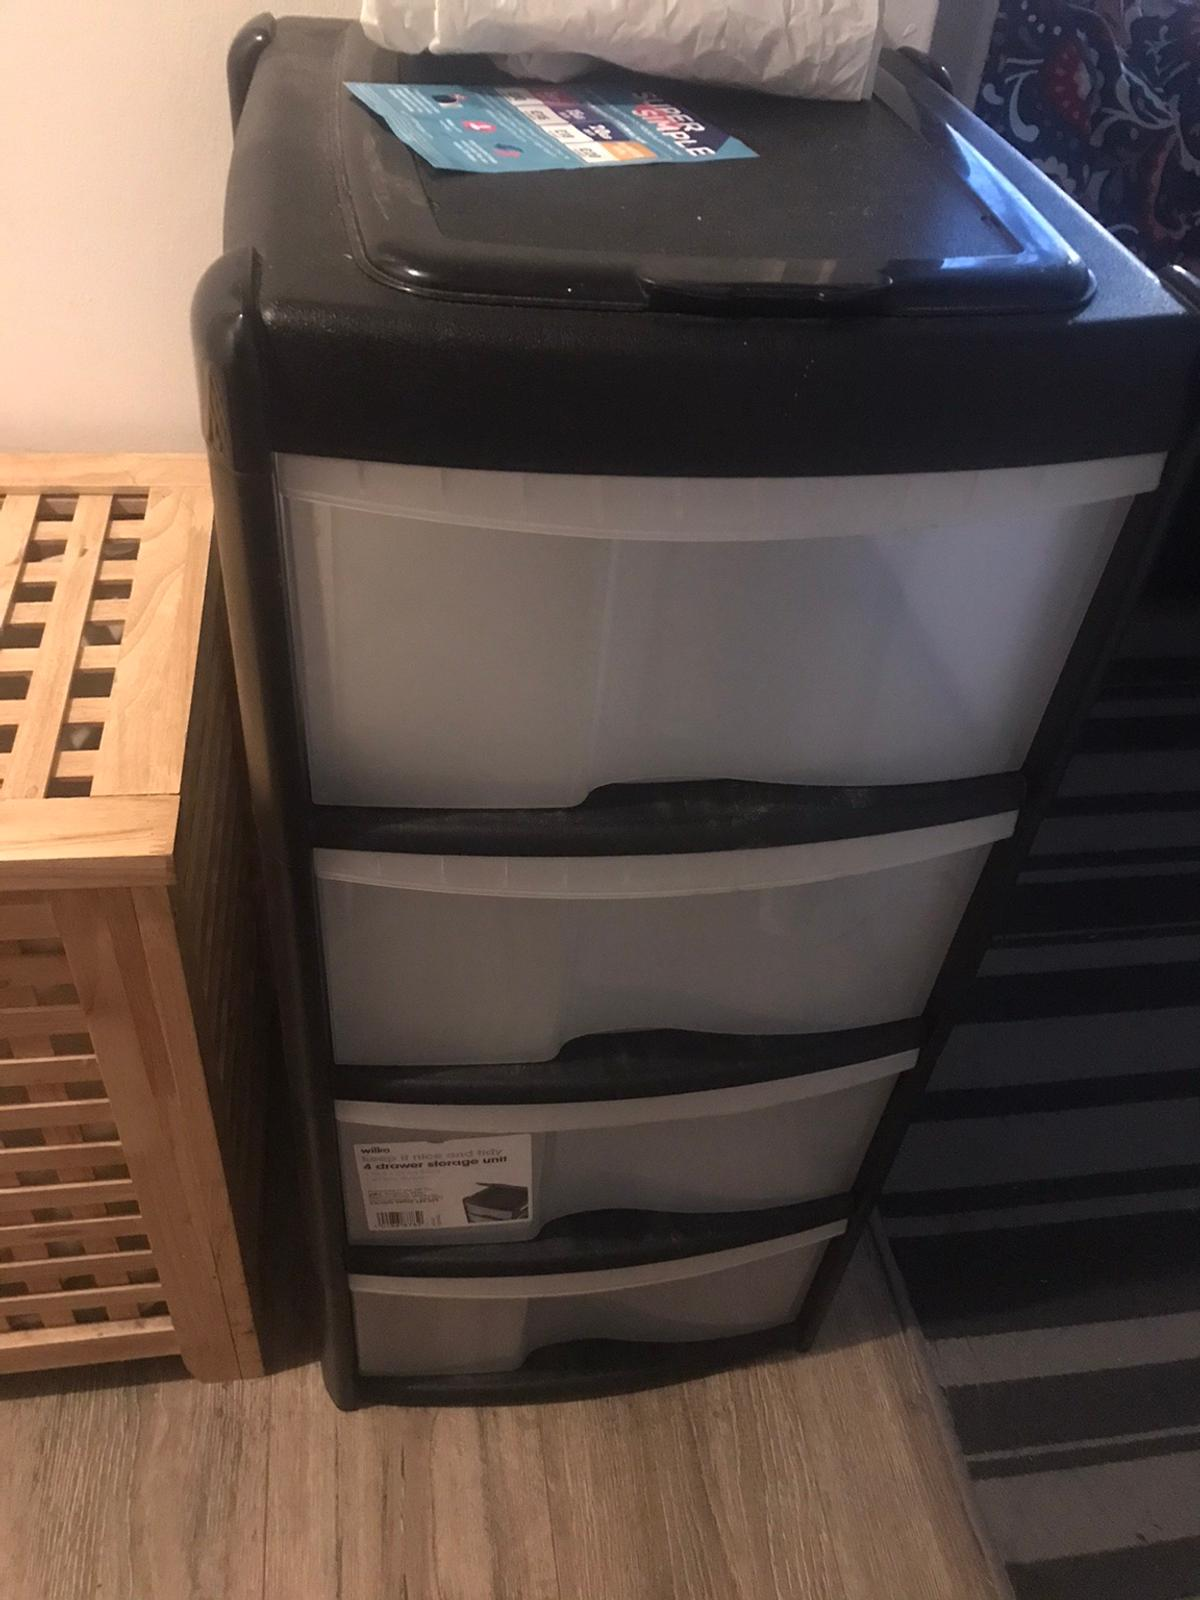 Black unit with 4 clear drawers and small storage compartment on top. £15 in wilko